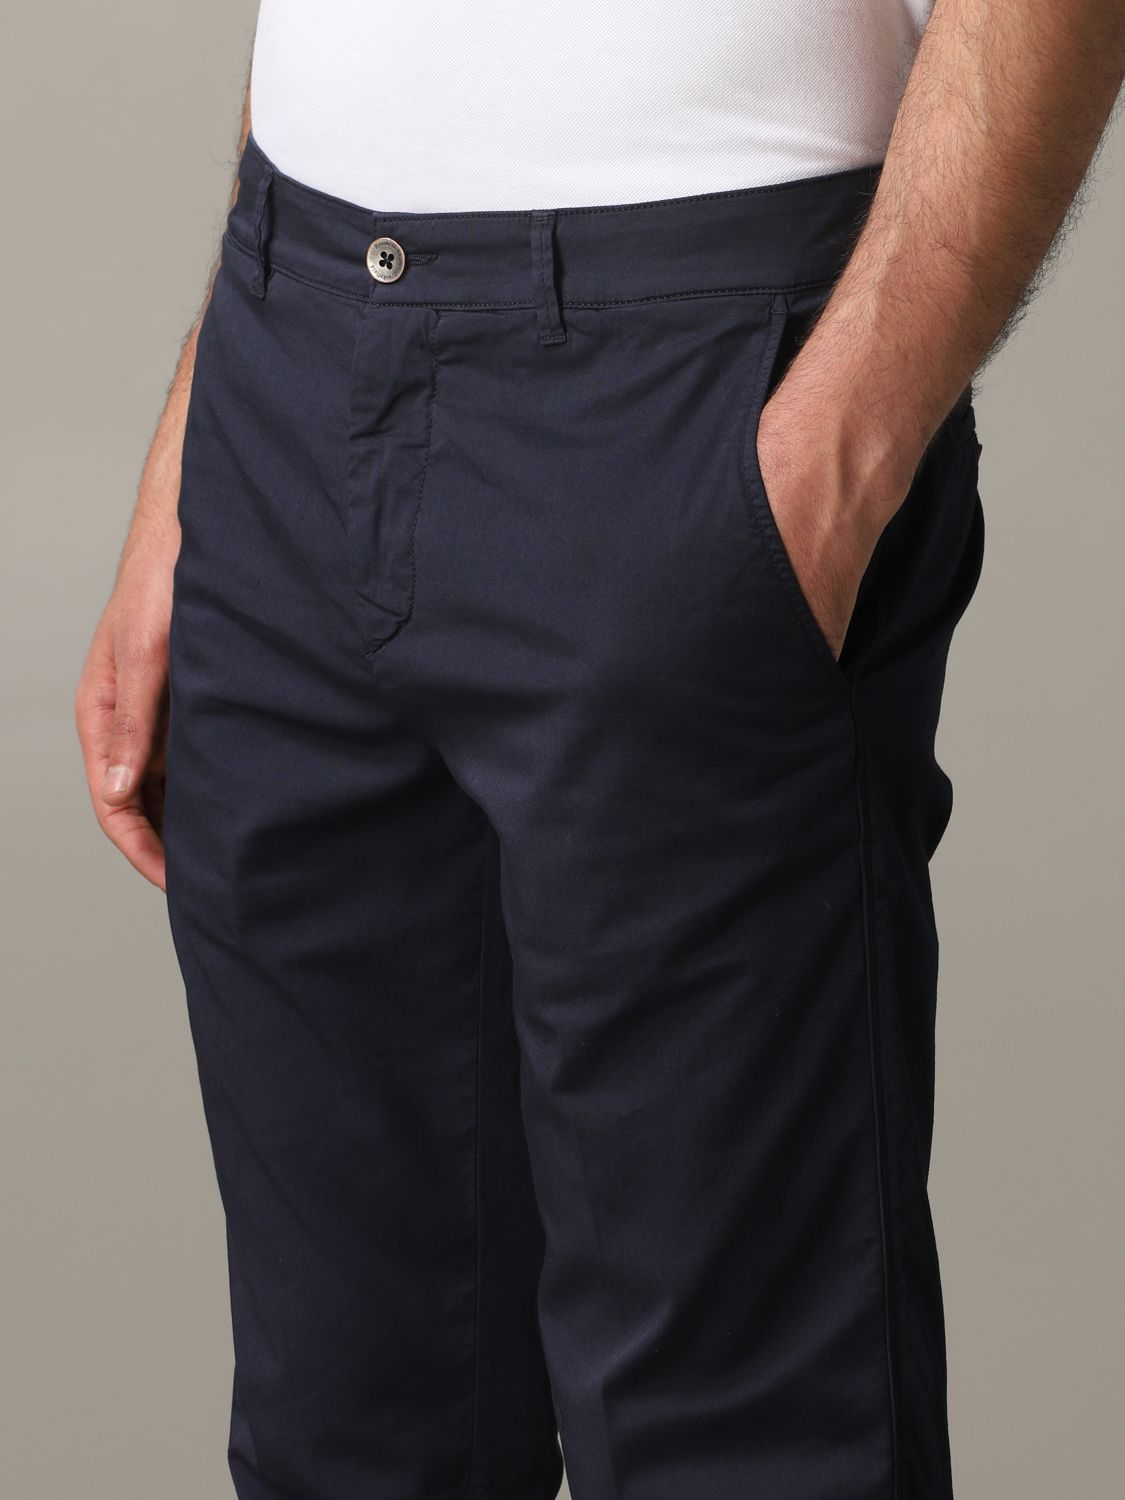 Hose Brooksfield: Hose herren Brooksfield navy 5